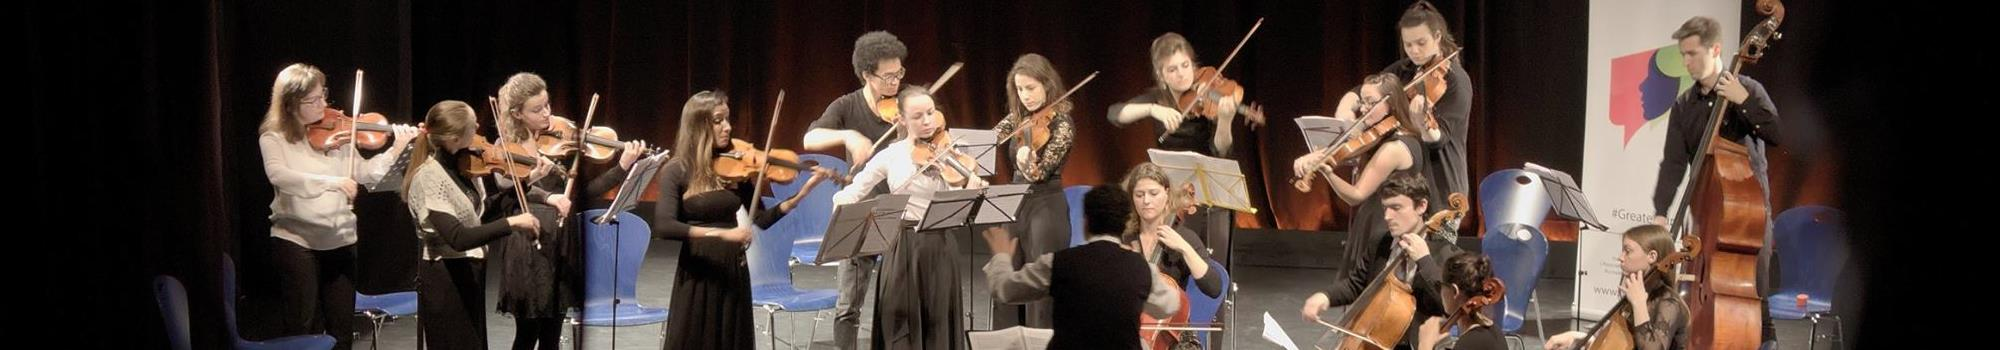 The GREATER EUROPE PEACE ORCHESTRA on tour in London -